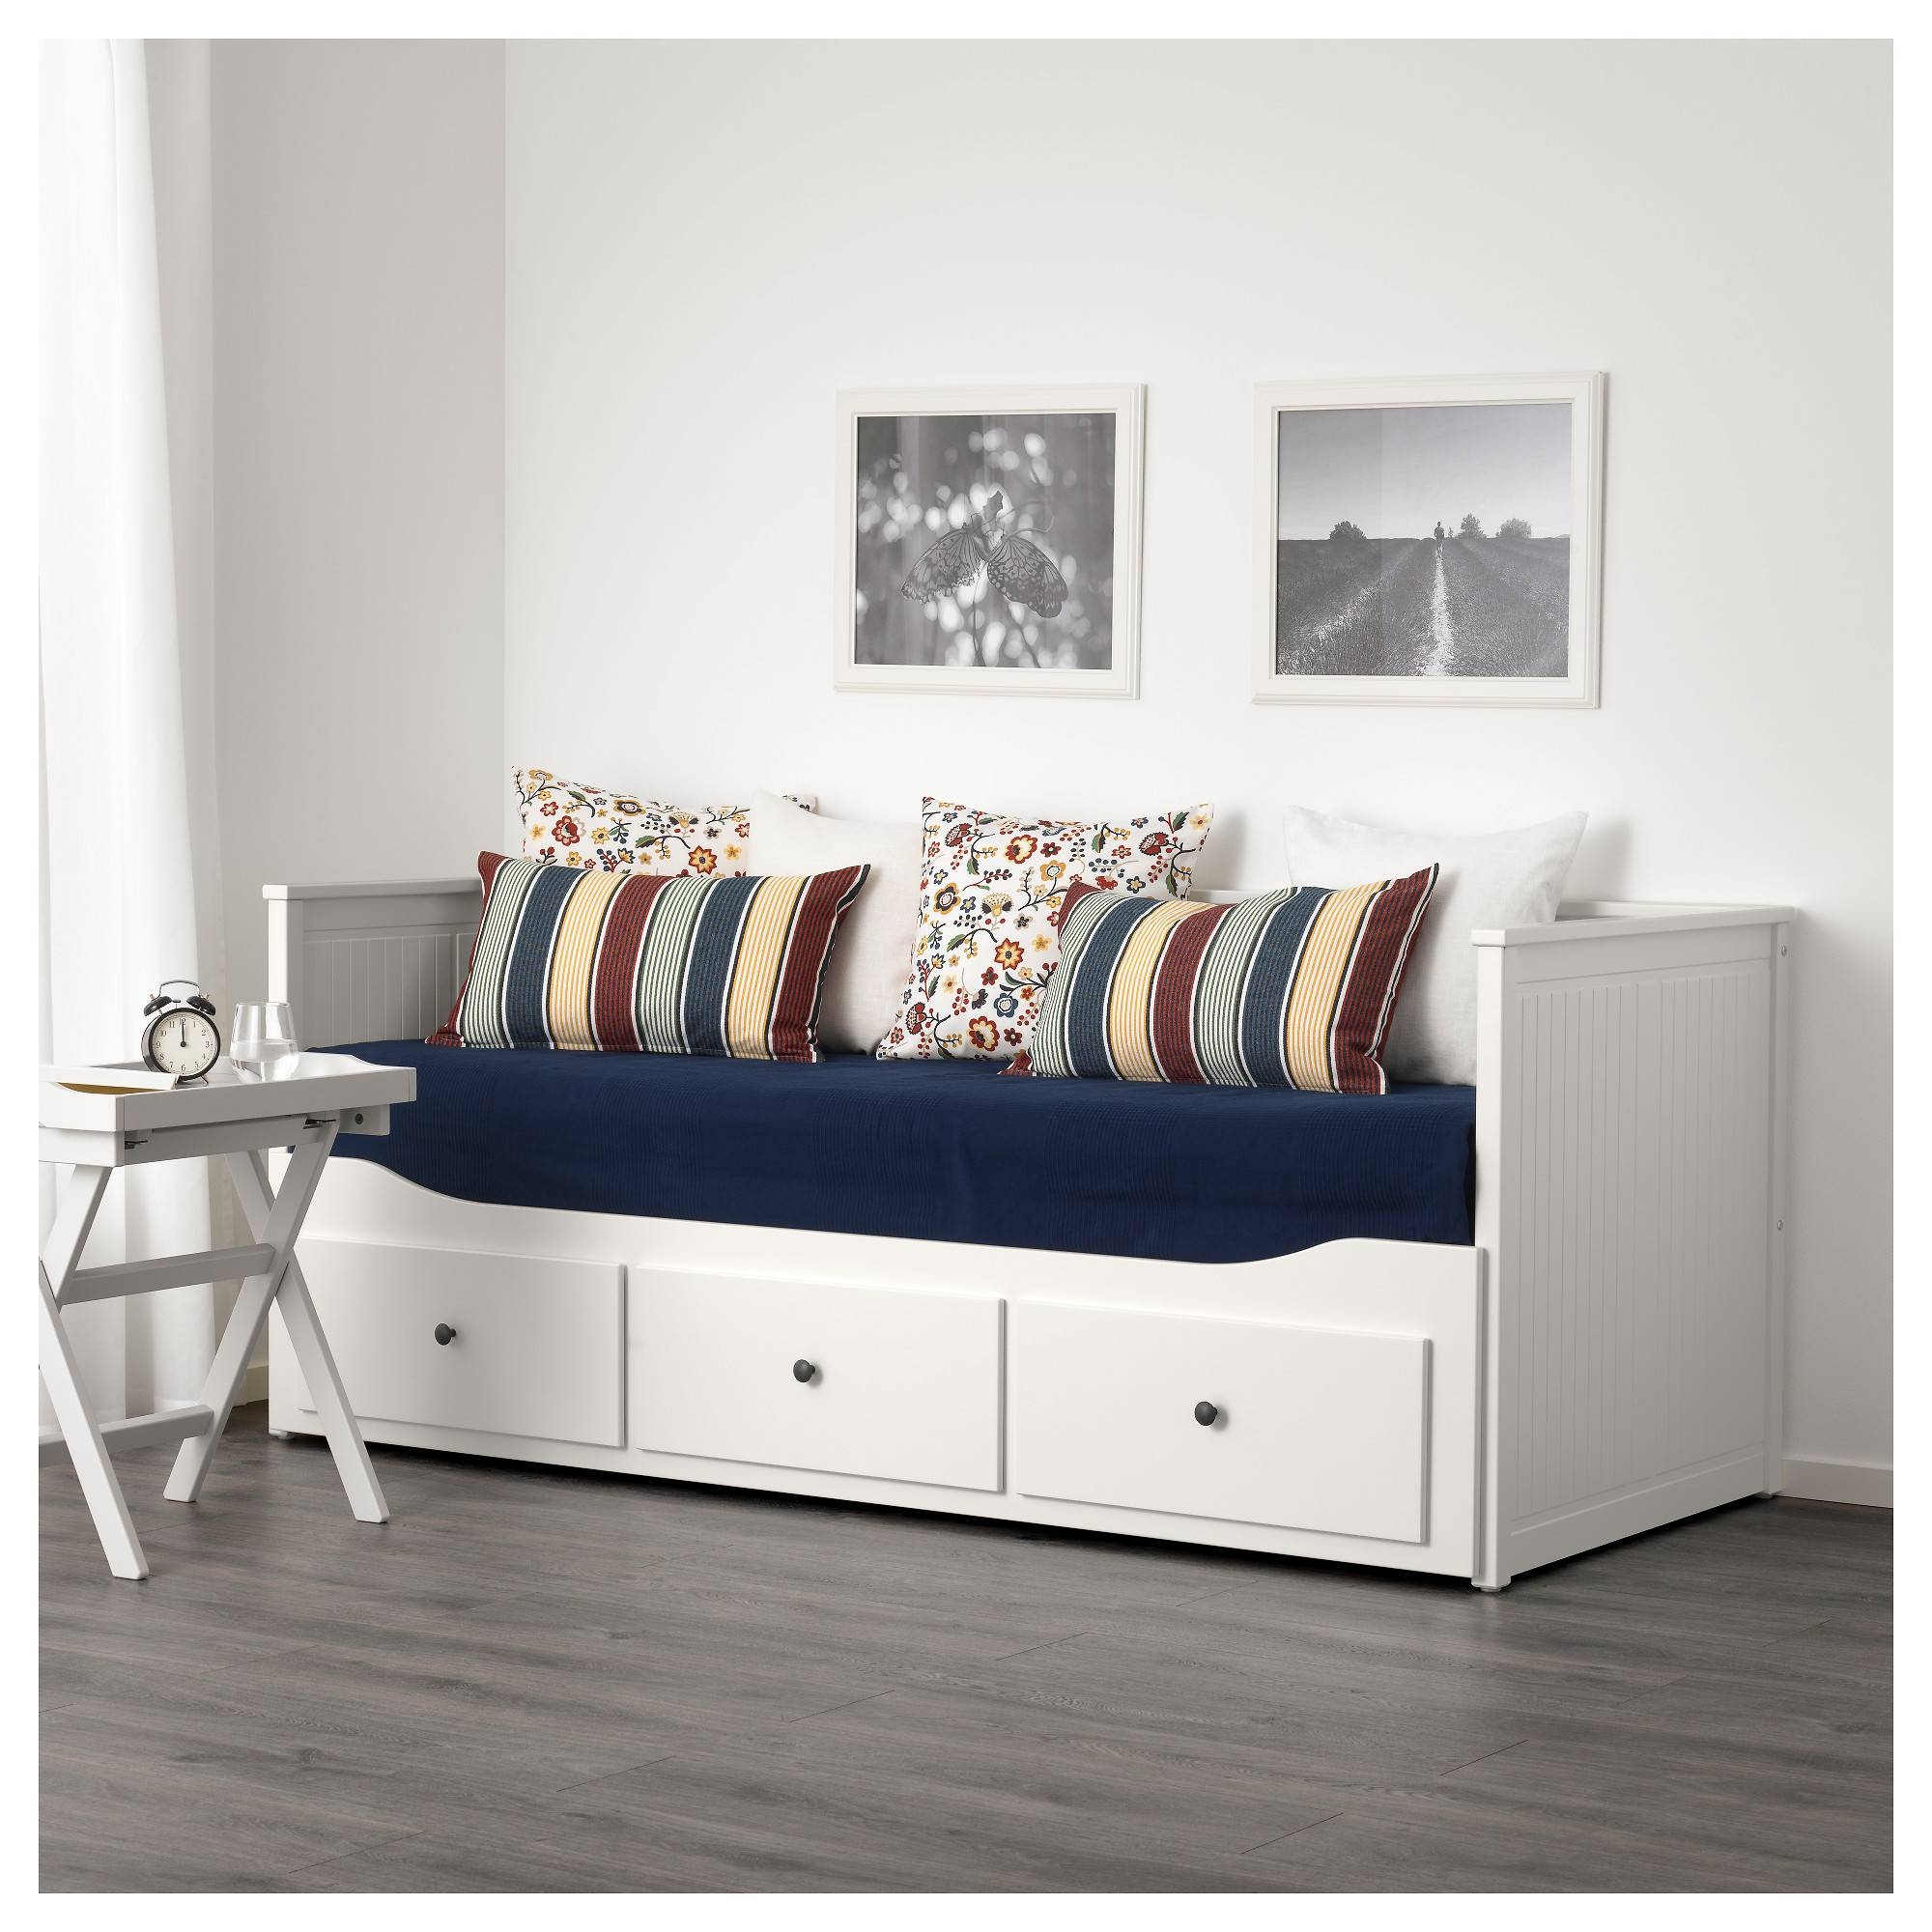 Hemnes Day Bed W 3 Drawers/2 Mattresses White/moshult Firm 80X200 Intended For Sofa Day Beds (View 19 of 30)